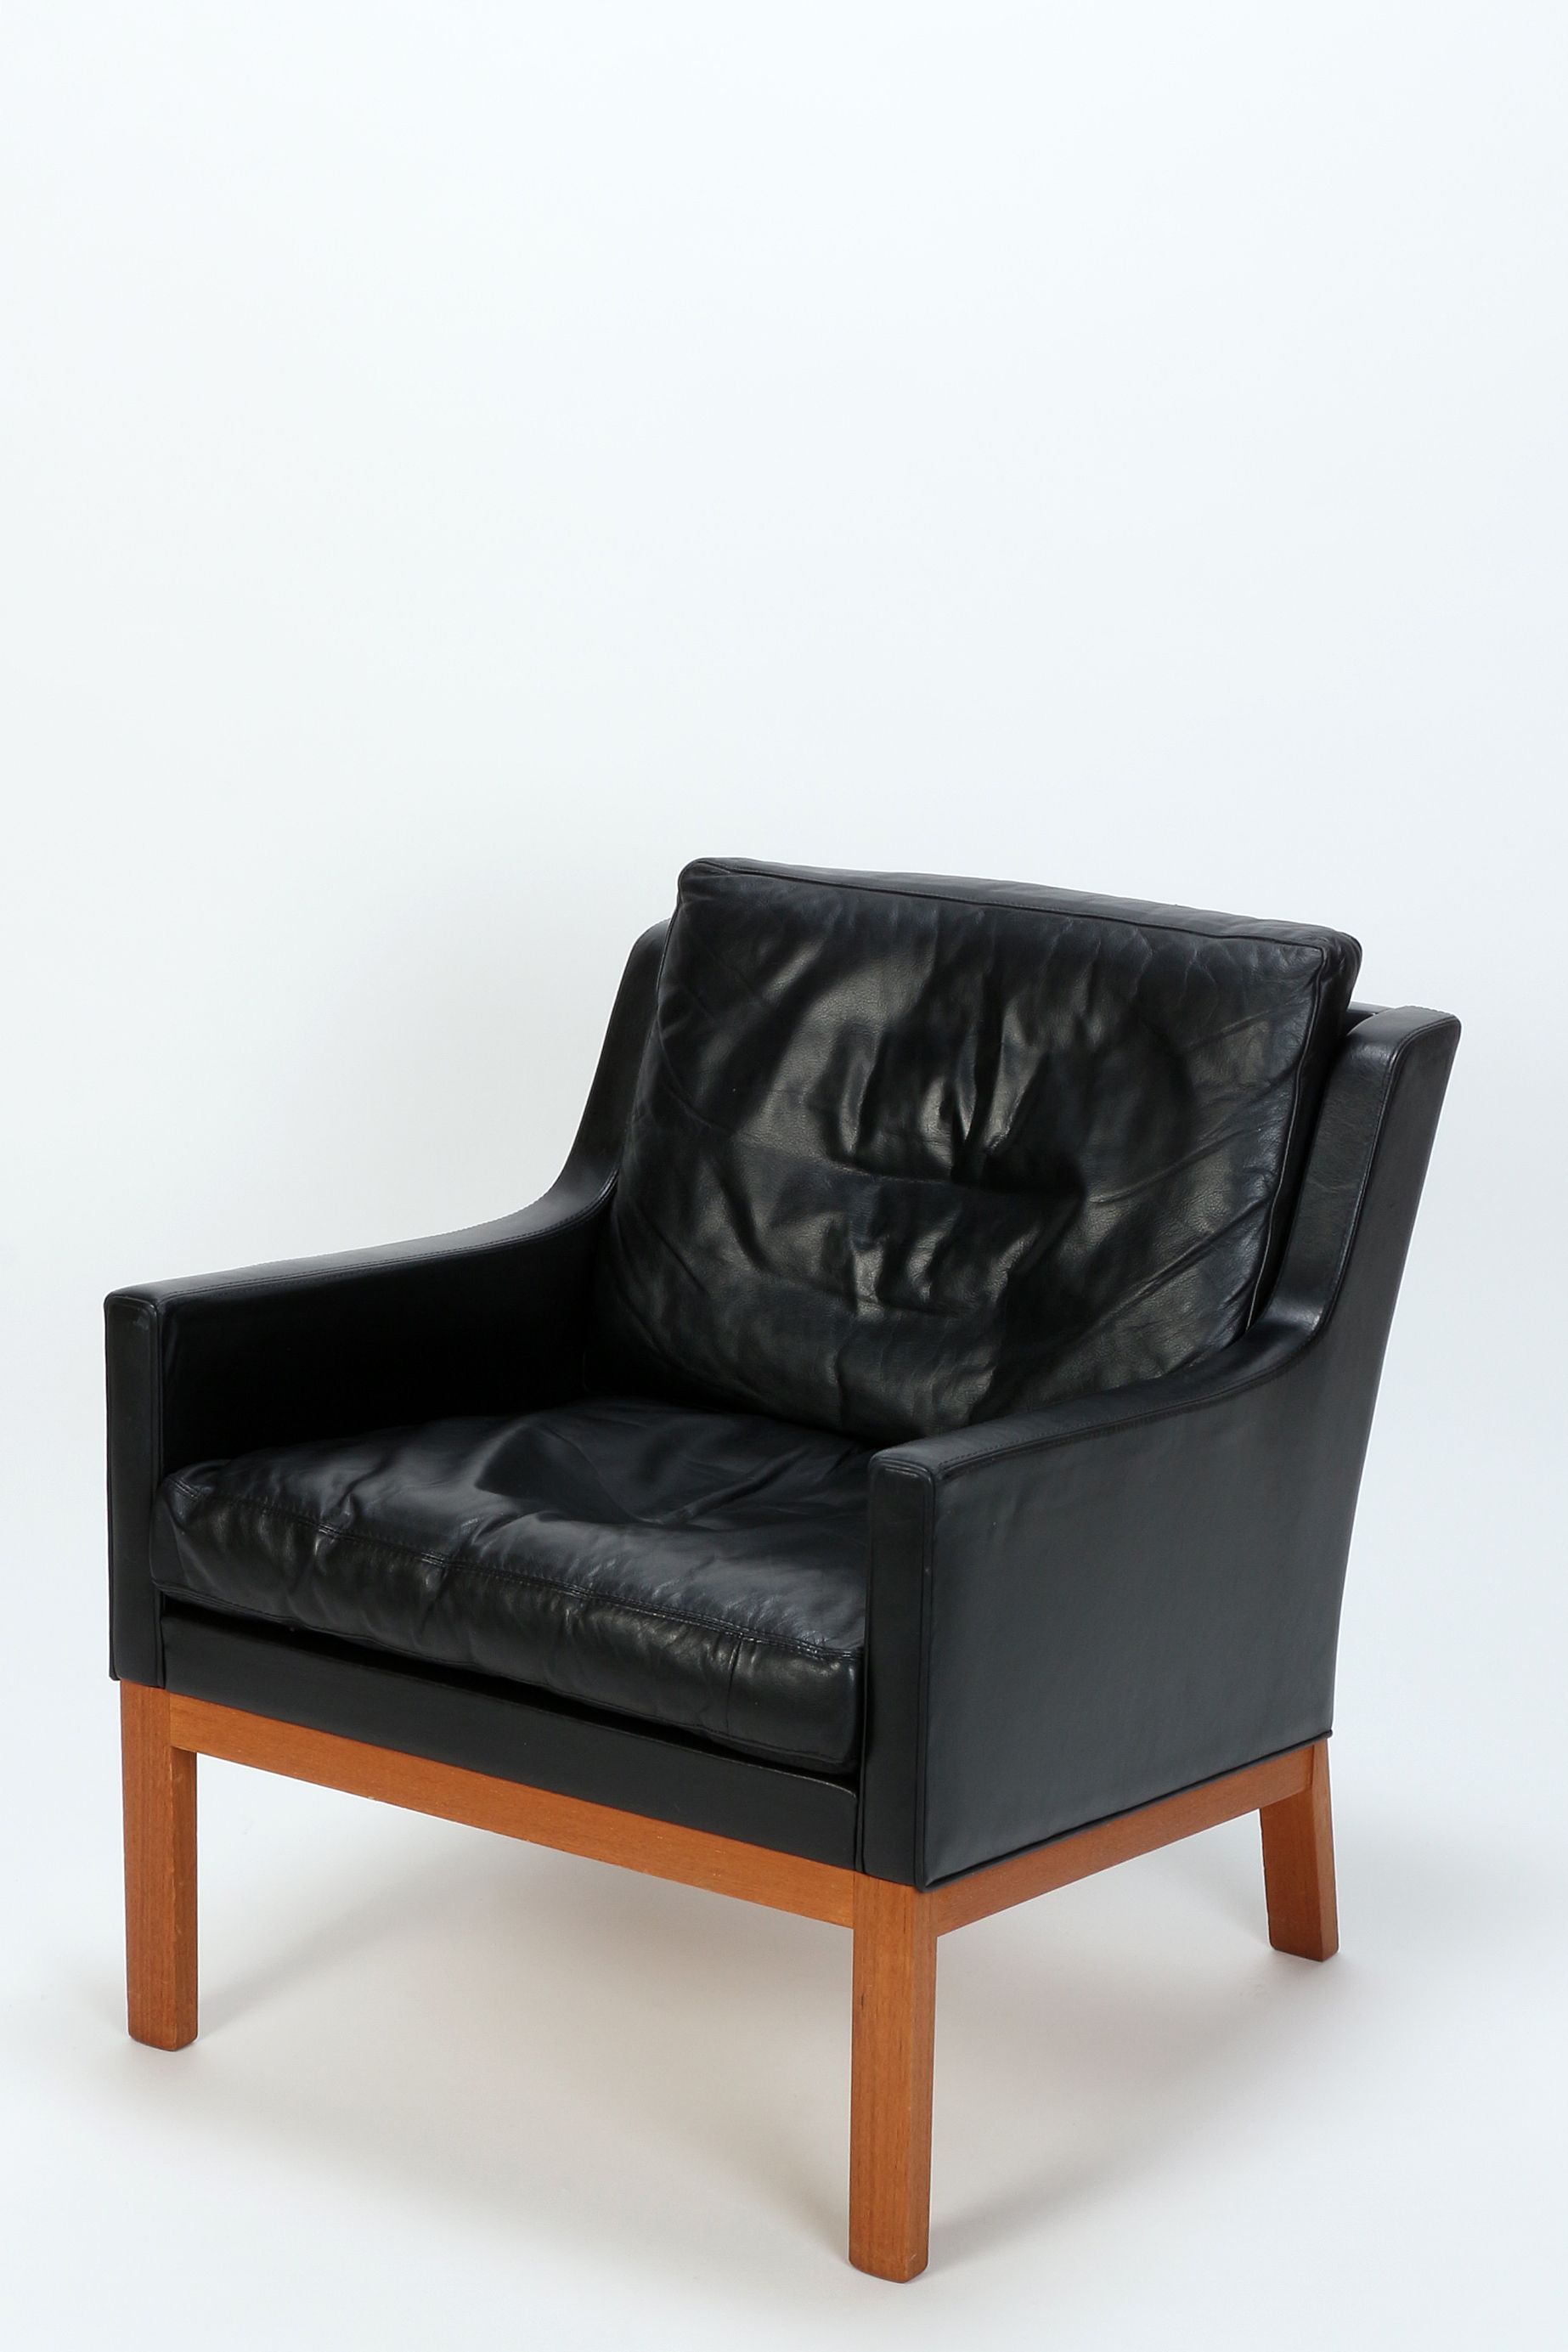 sienna recliner product chair lounge urbano vintage interiors leather